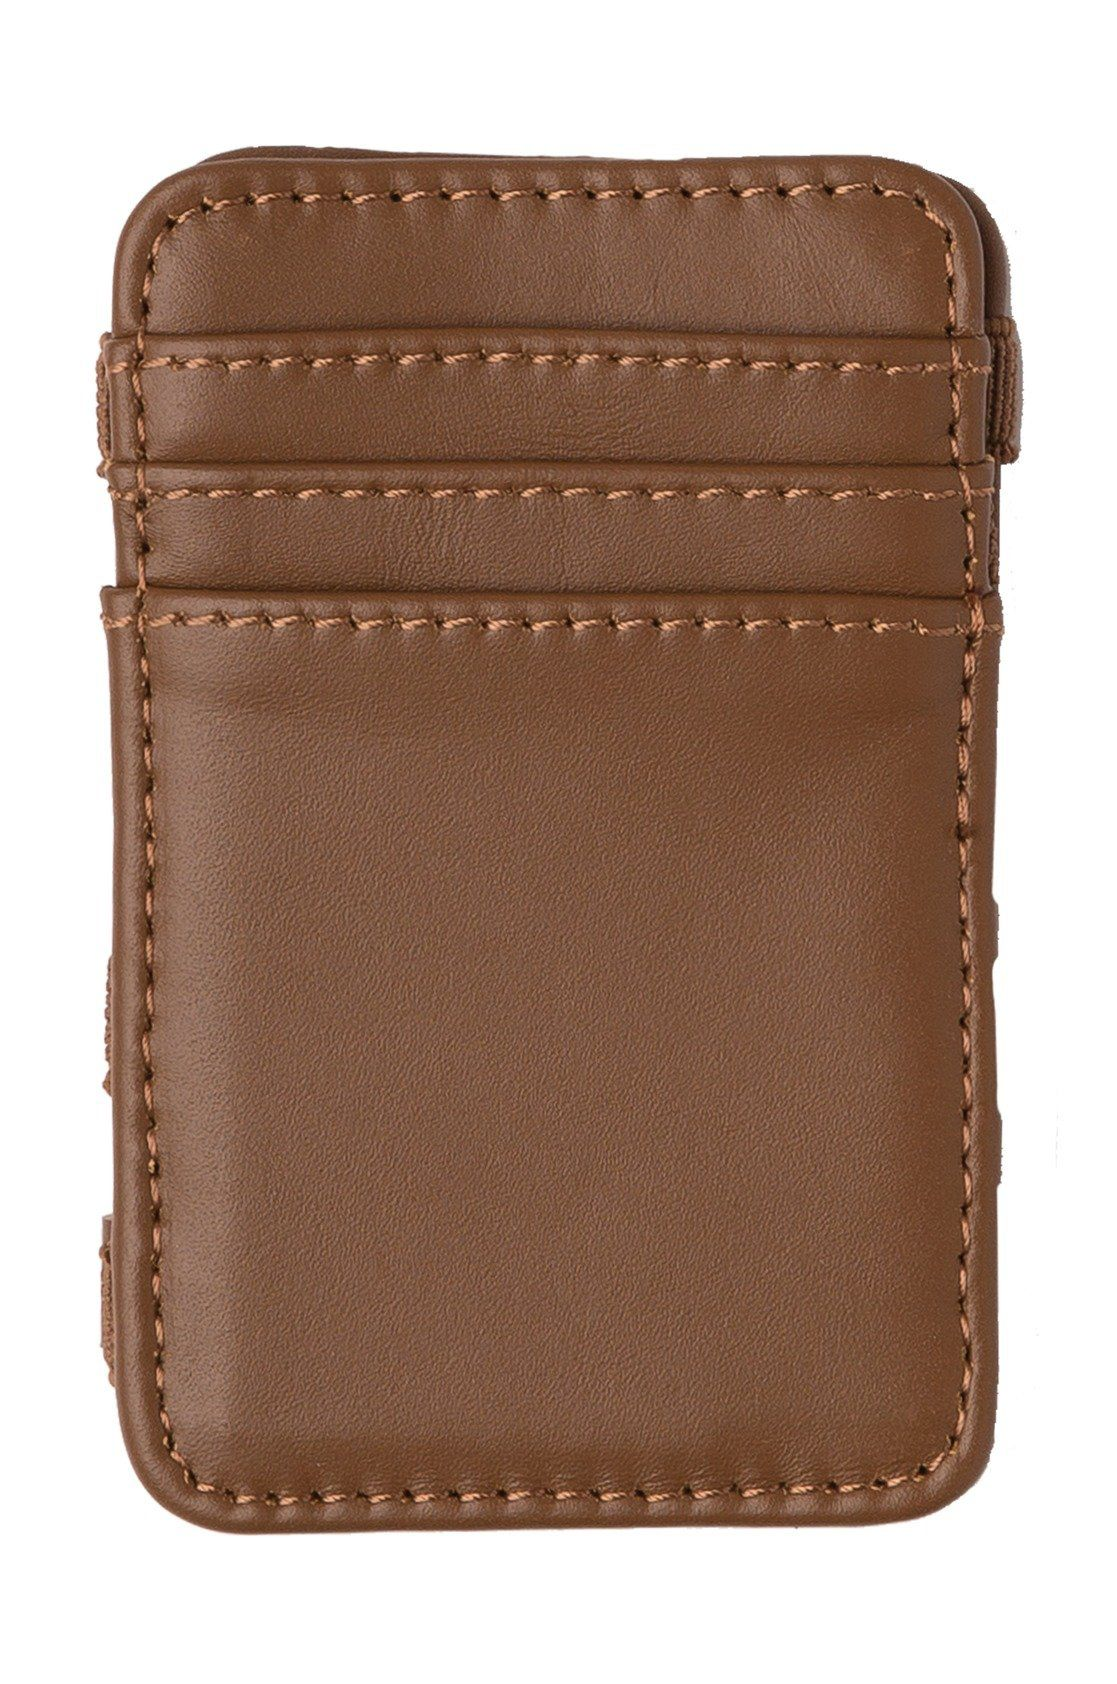 RVCA Leather Wallet LEATHER MAGIC WALLET Tan